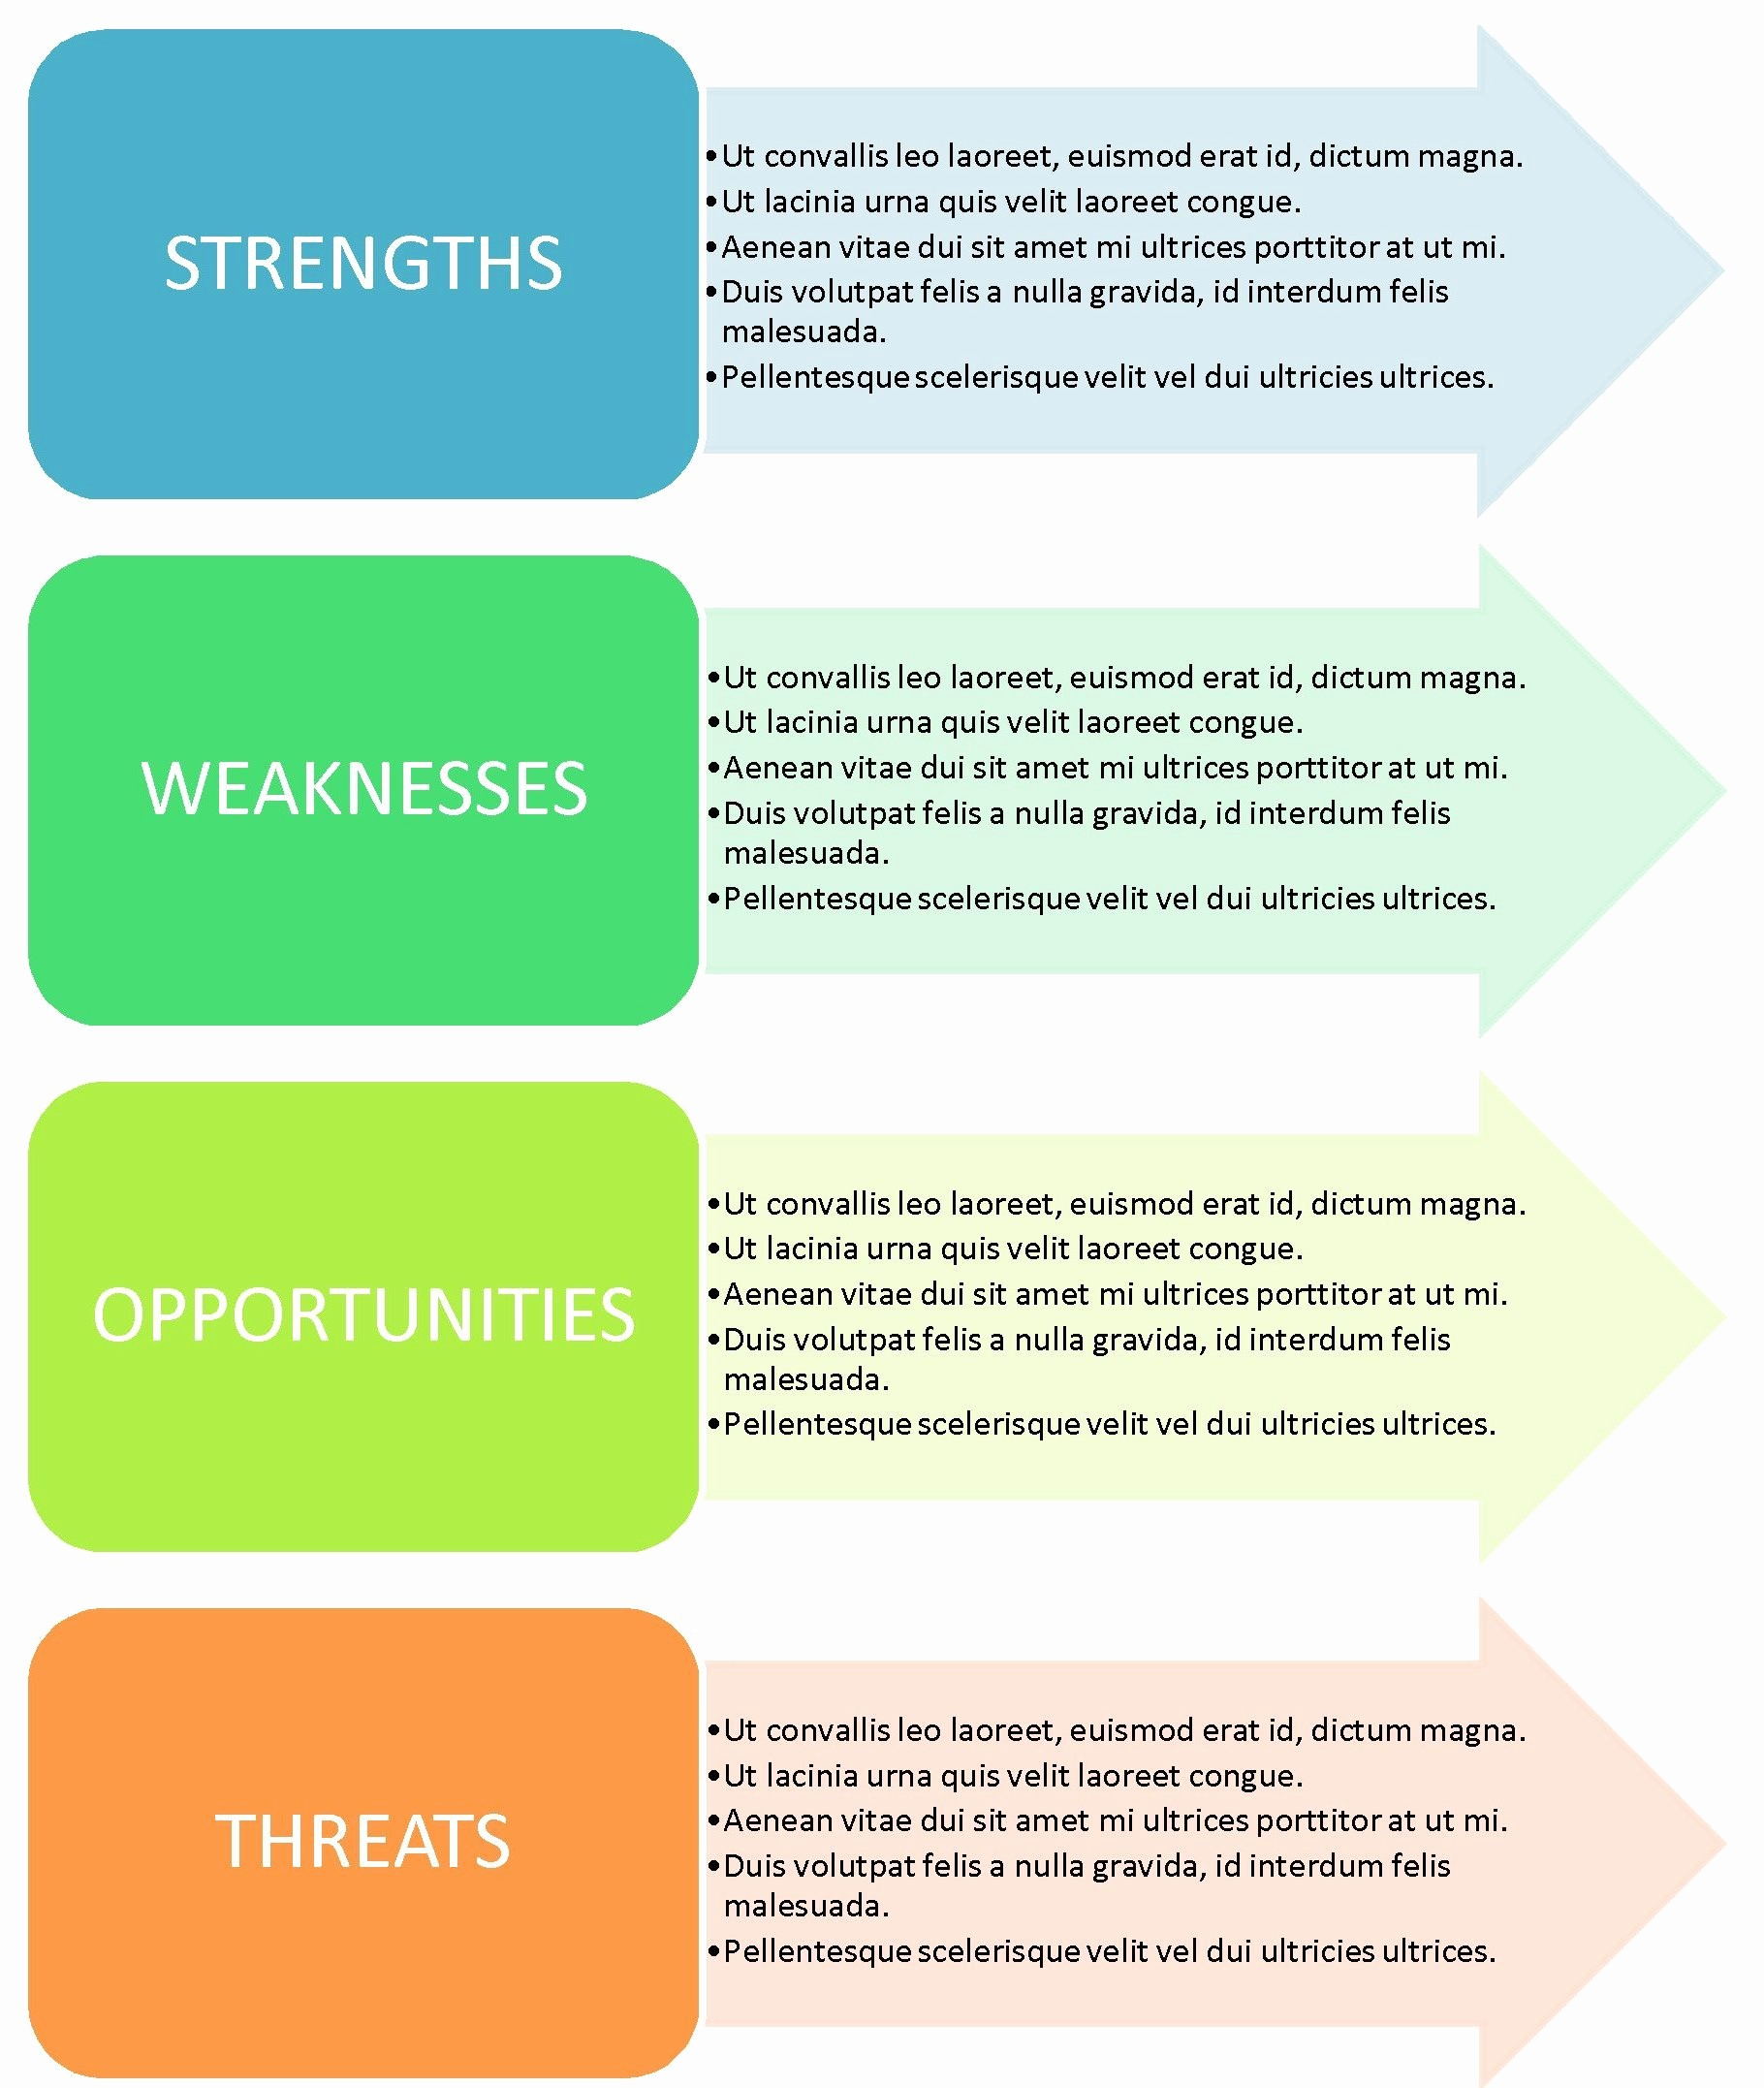 Swot Analysis Template Microsoft Word Best Of 40 Free Swot Analysis Templates In Word Demplates